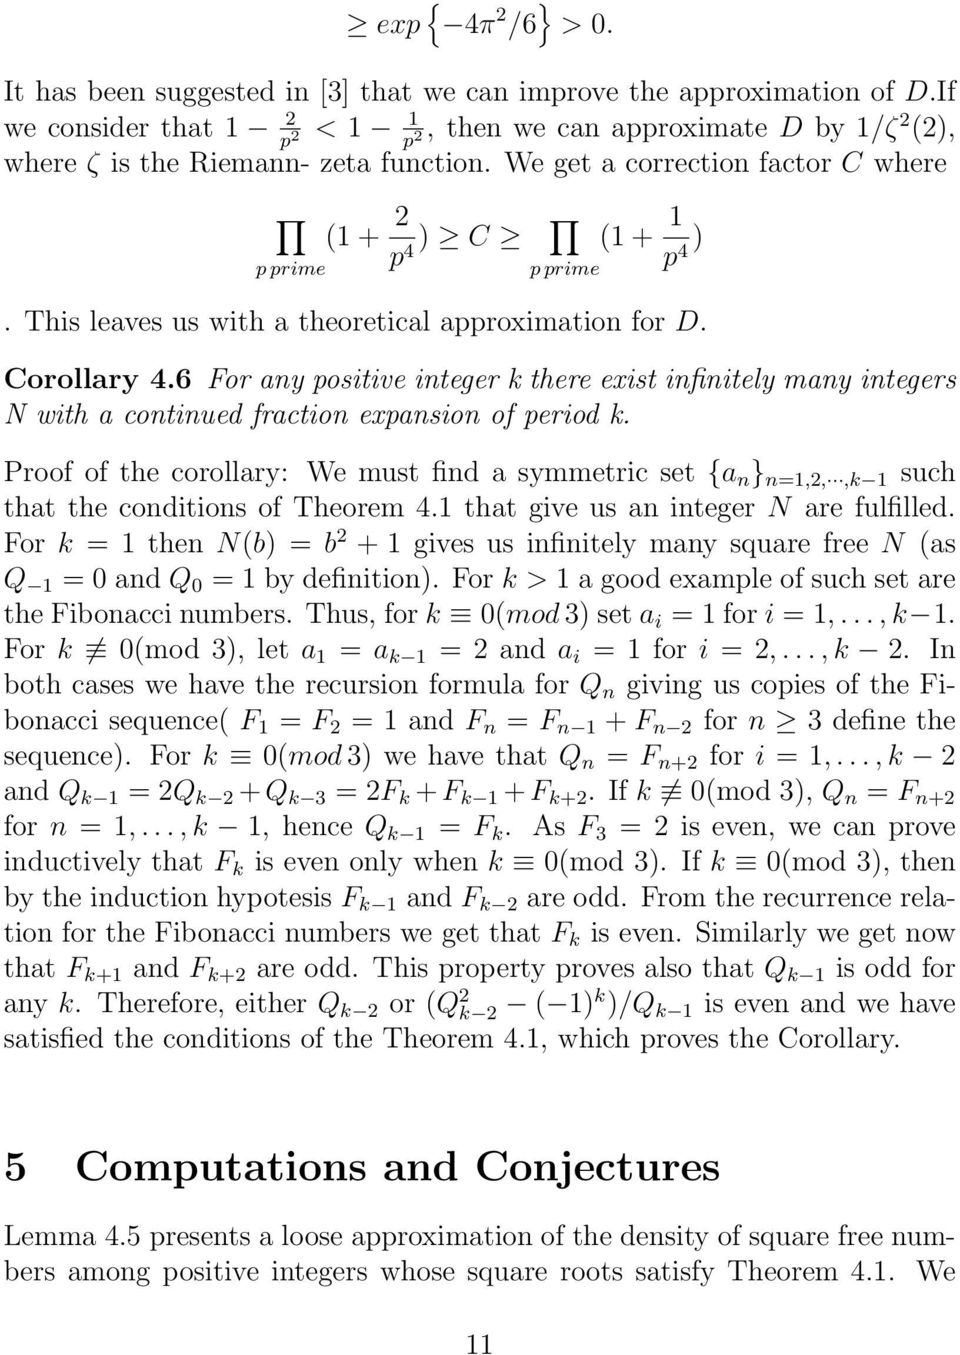 This leaves us with a theoretical approximation for D. Corollary 4.6 For any positive integer k there exist infinitely many integers N with a continued fraction expansion of period k.